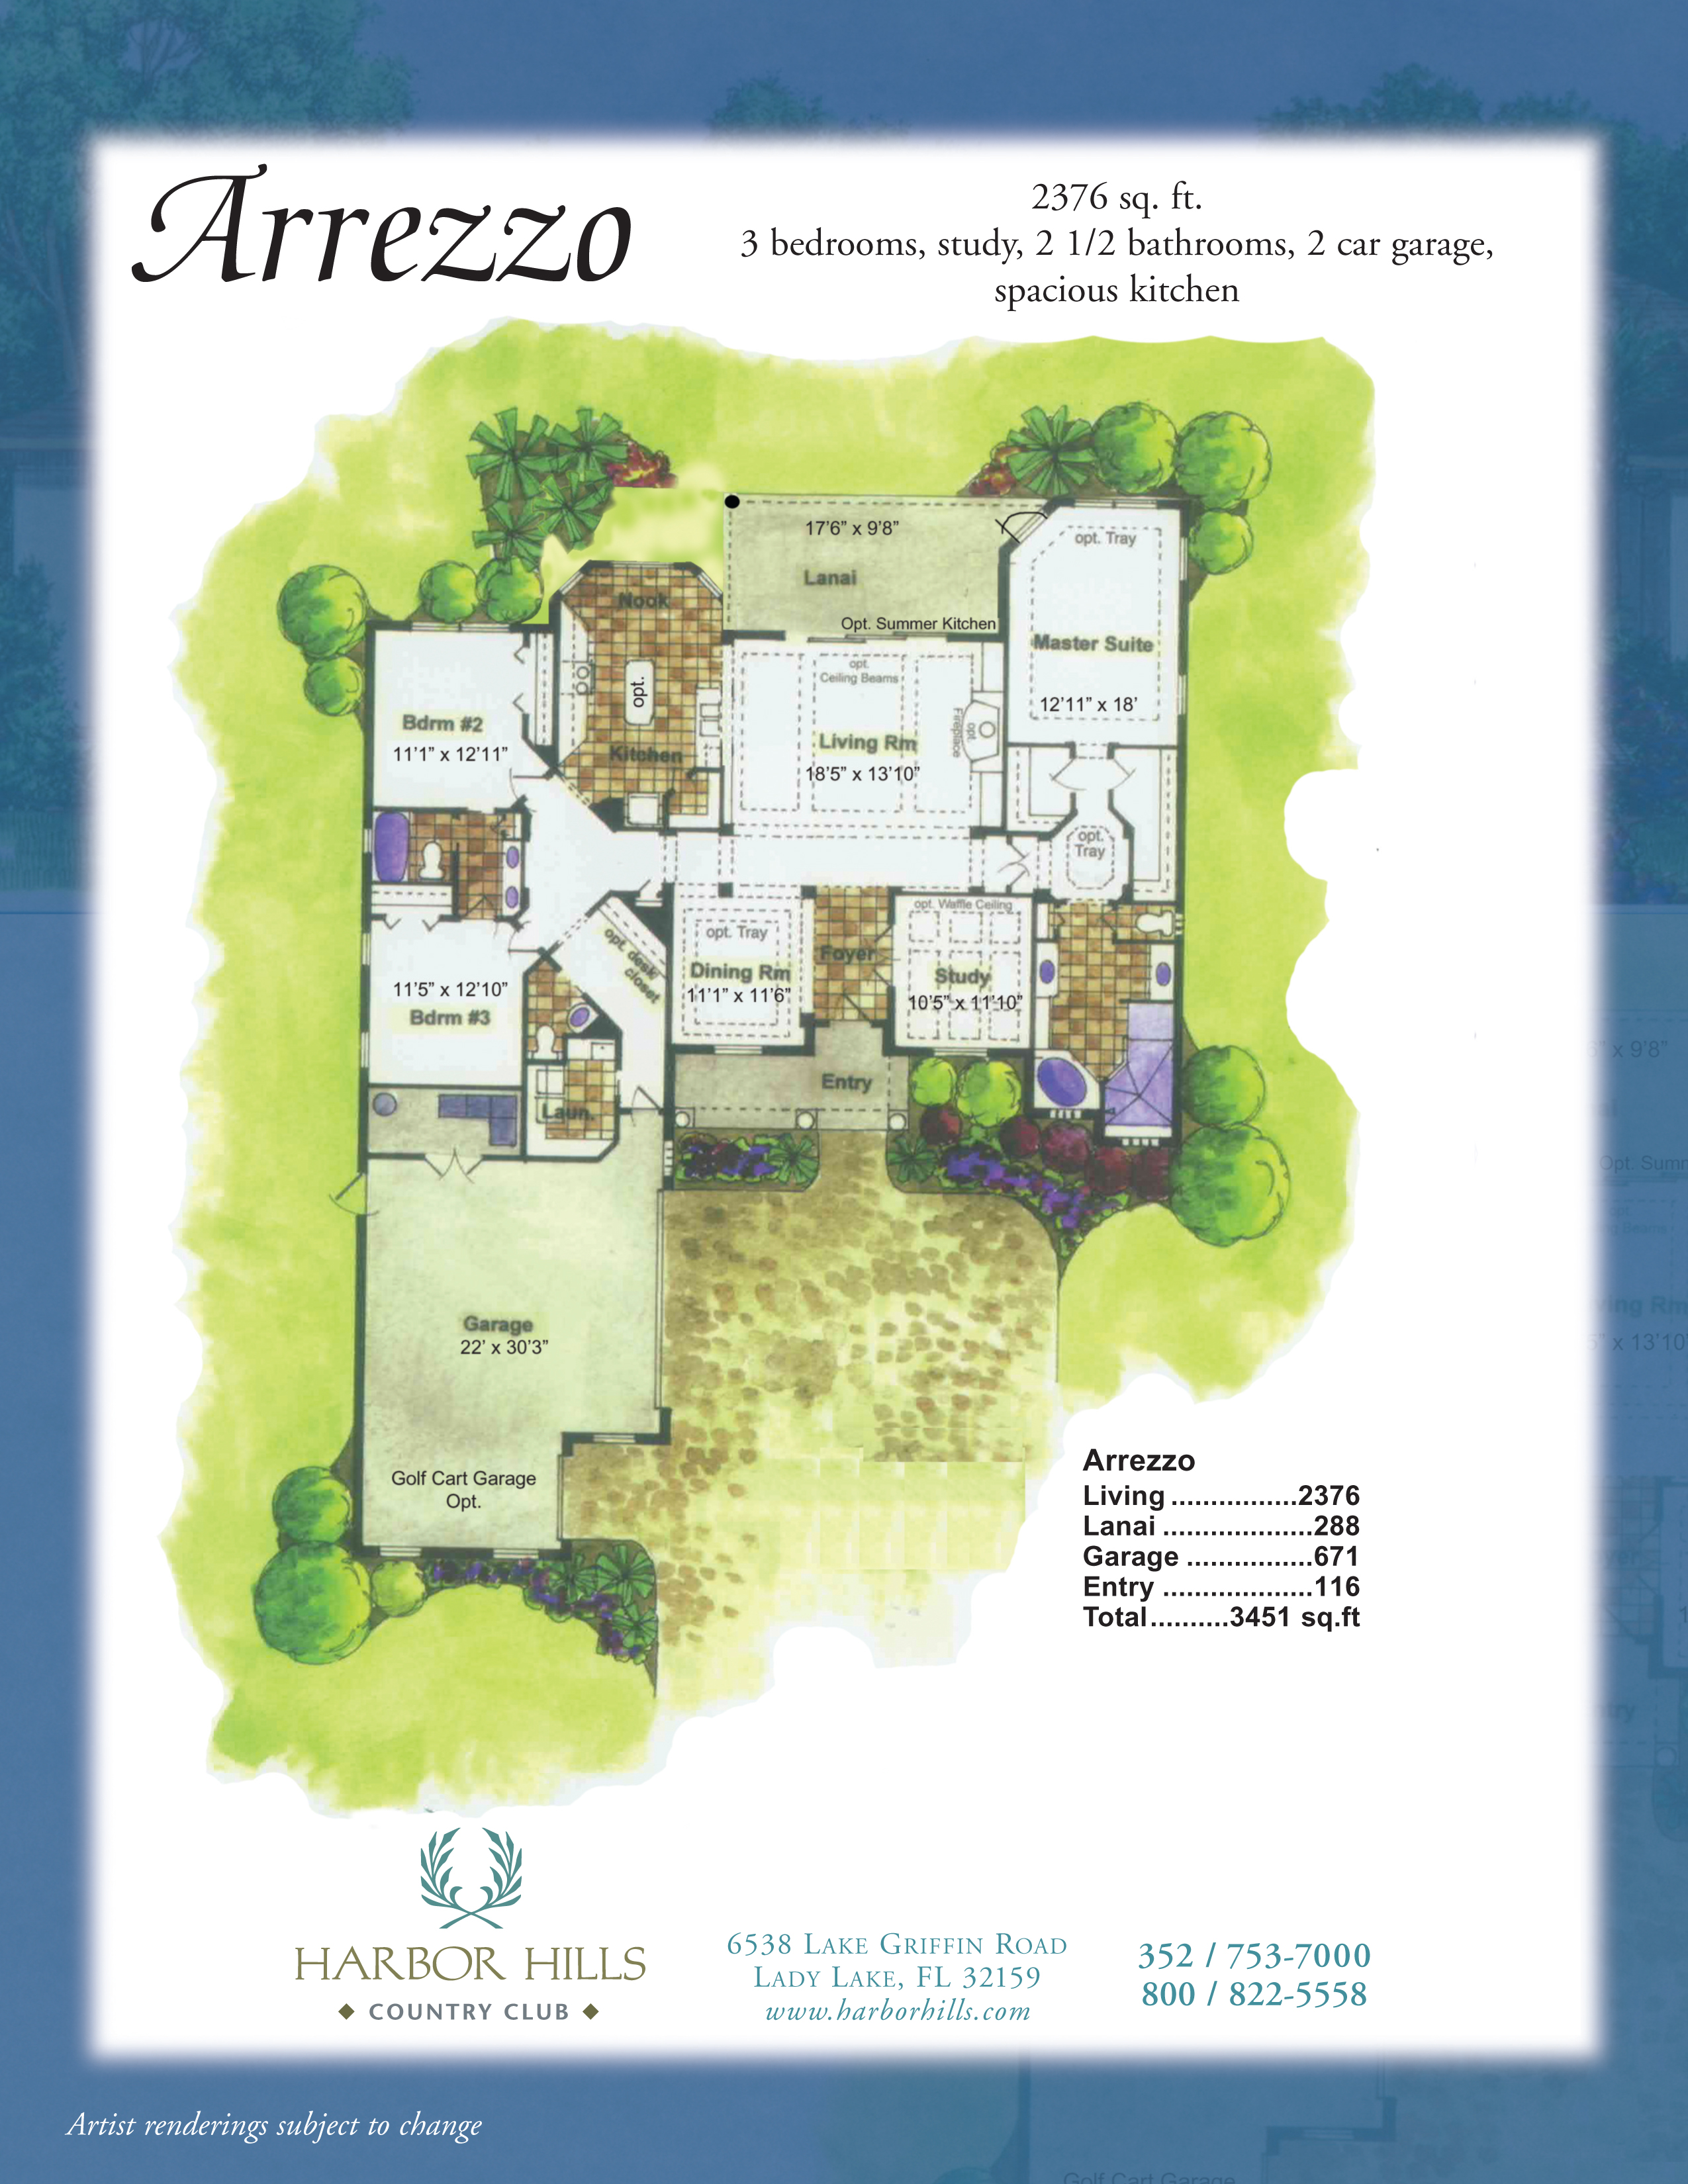 arrezzo harbor hills country club the arrezzo is a stunning home and is unmatched in design value it has all the features of a grand estate golf course home only on a smaller scale for a